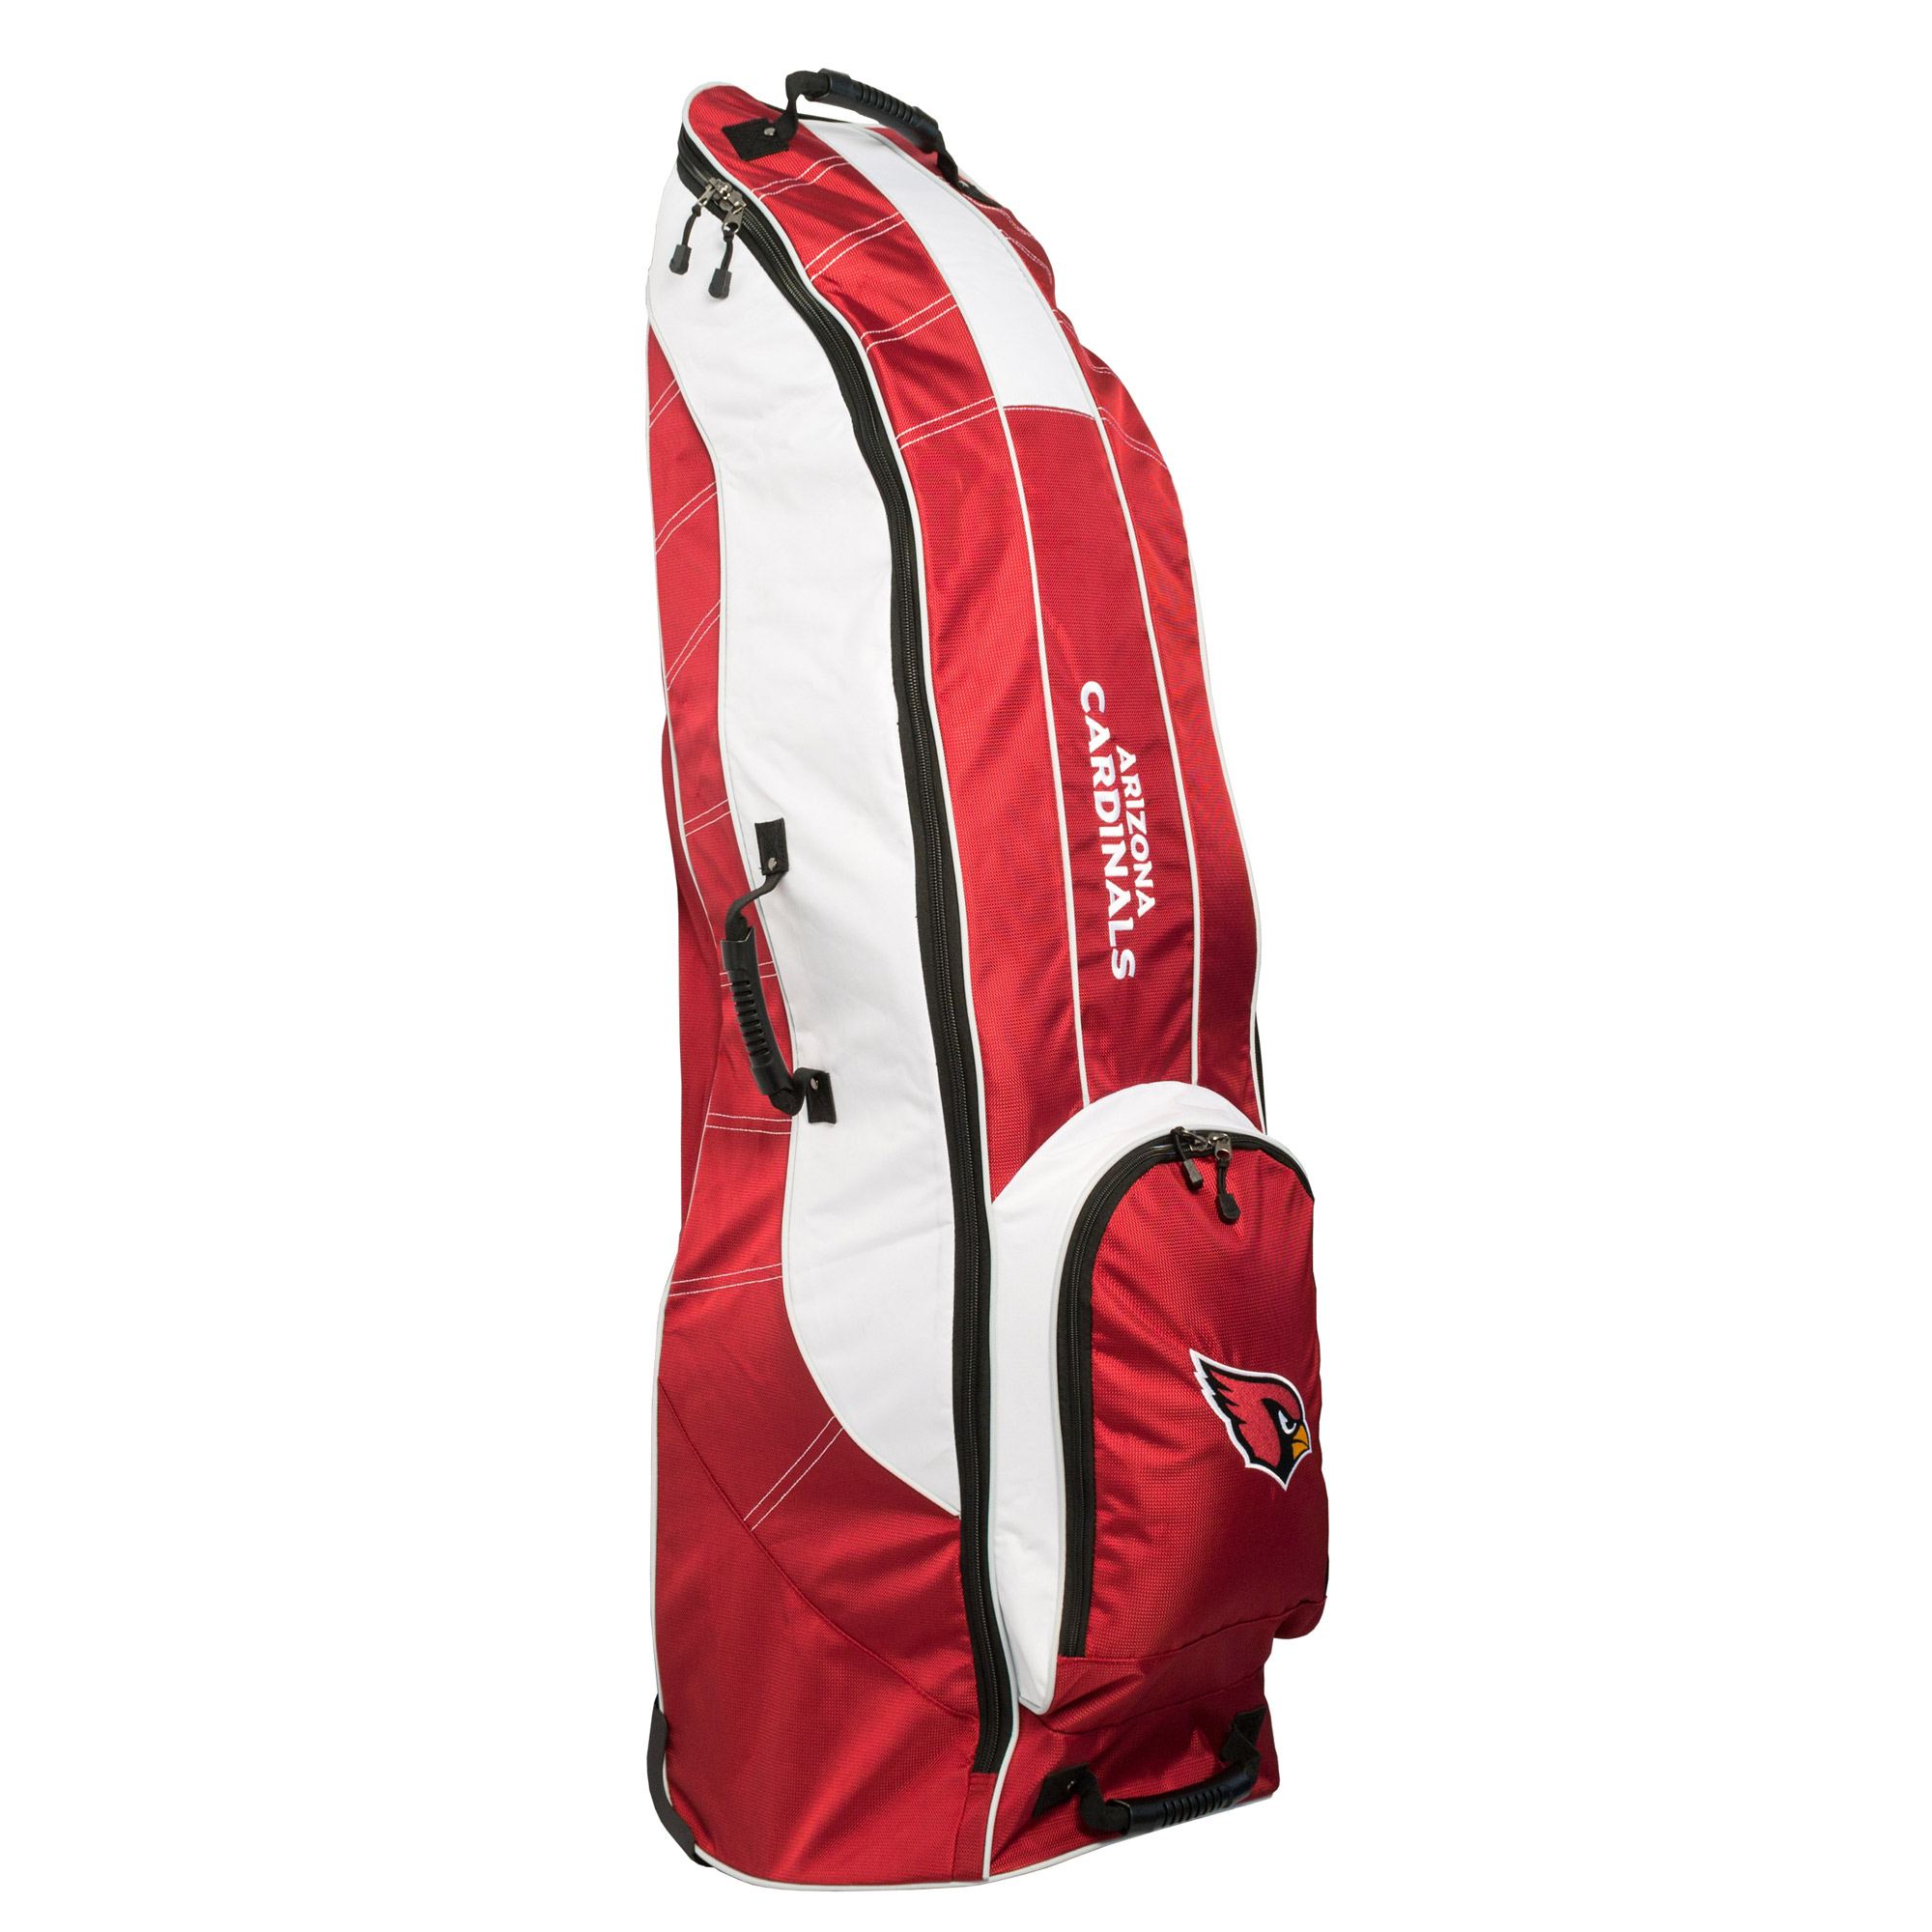 Arizona Cardinals Team Golf Travel Bag - No Size